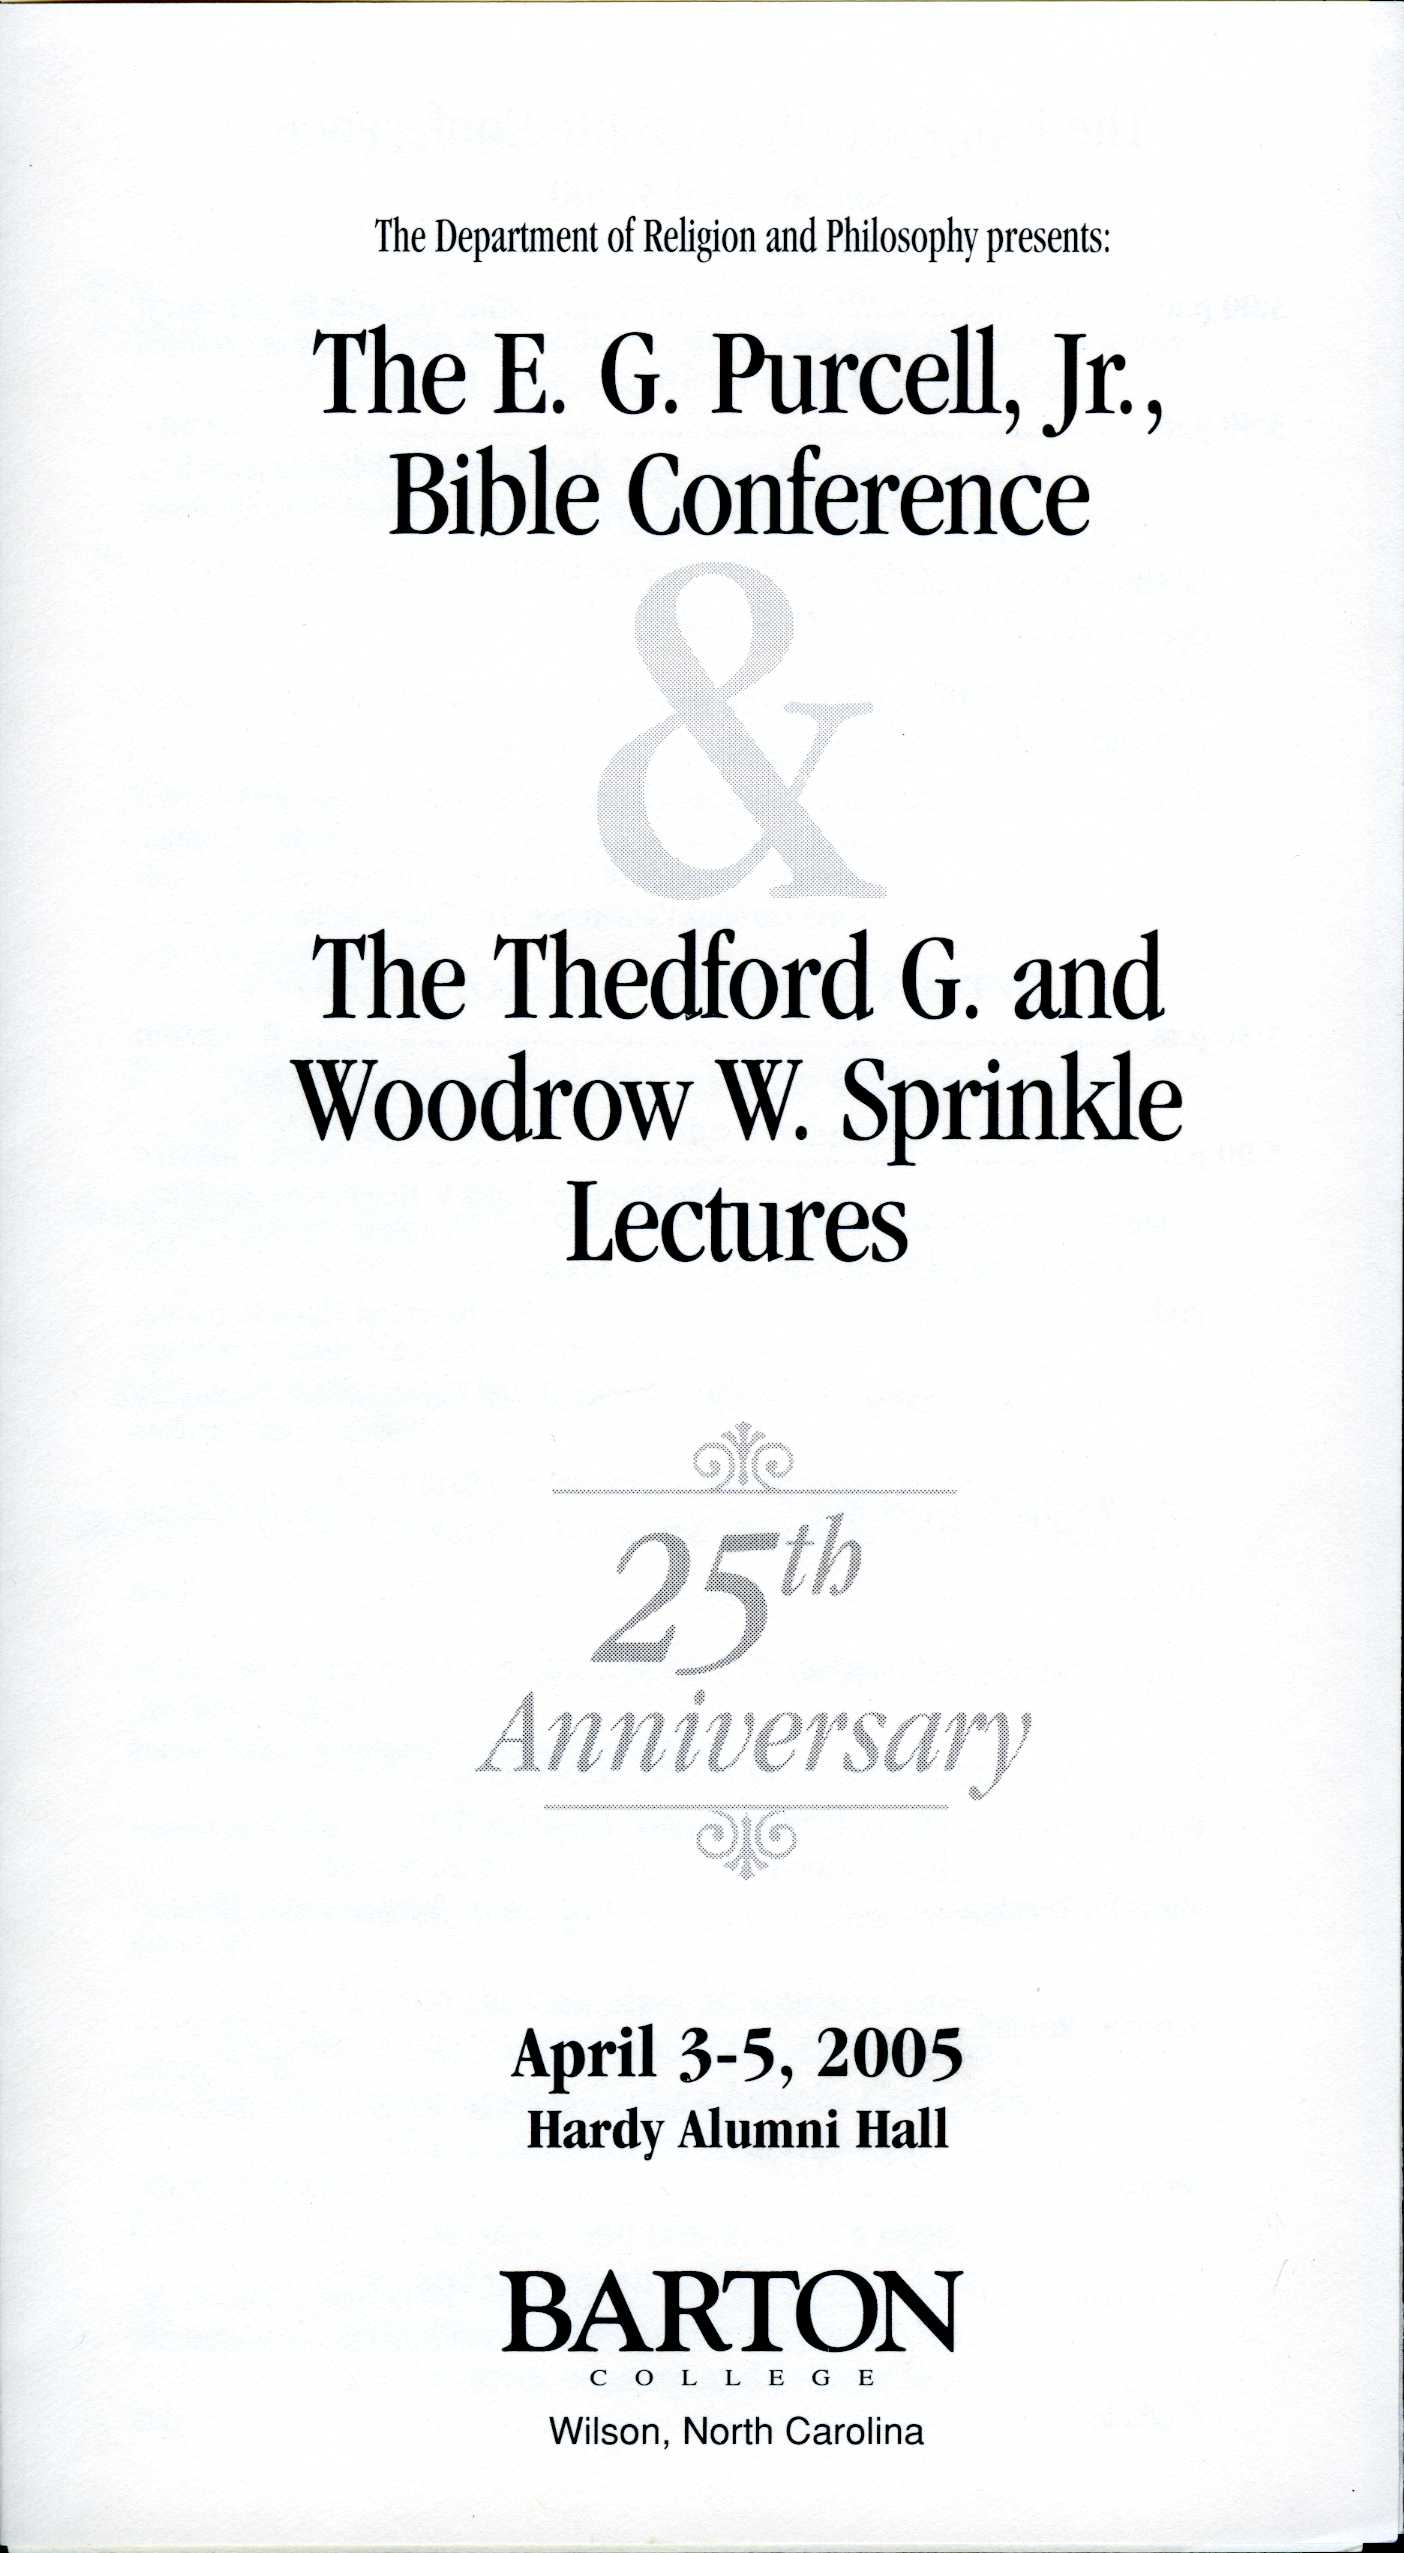 Purcell Bible Conference & Sprinkle Lectures